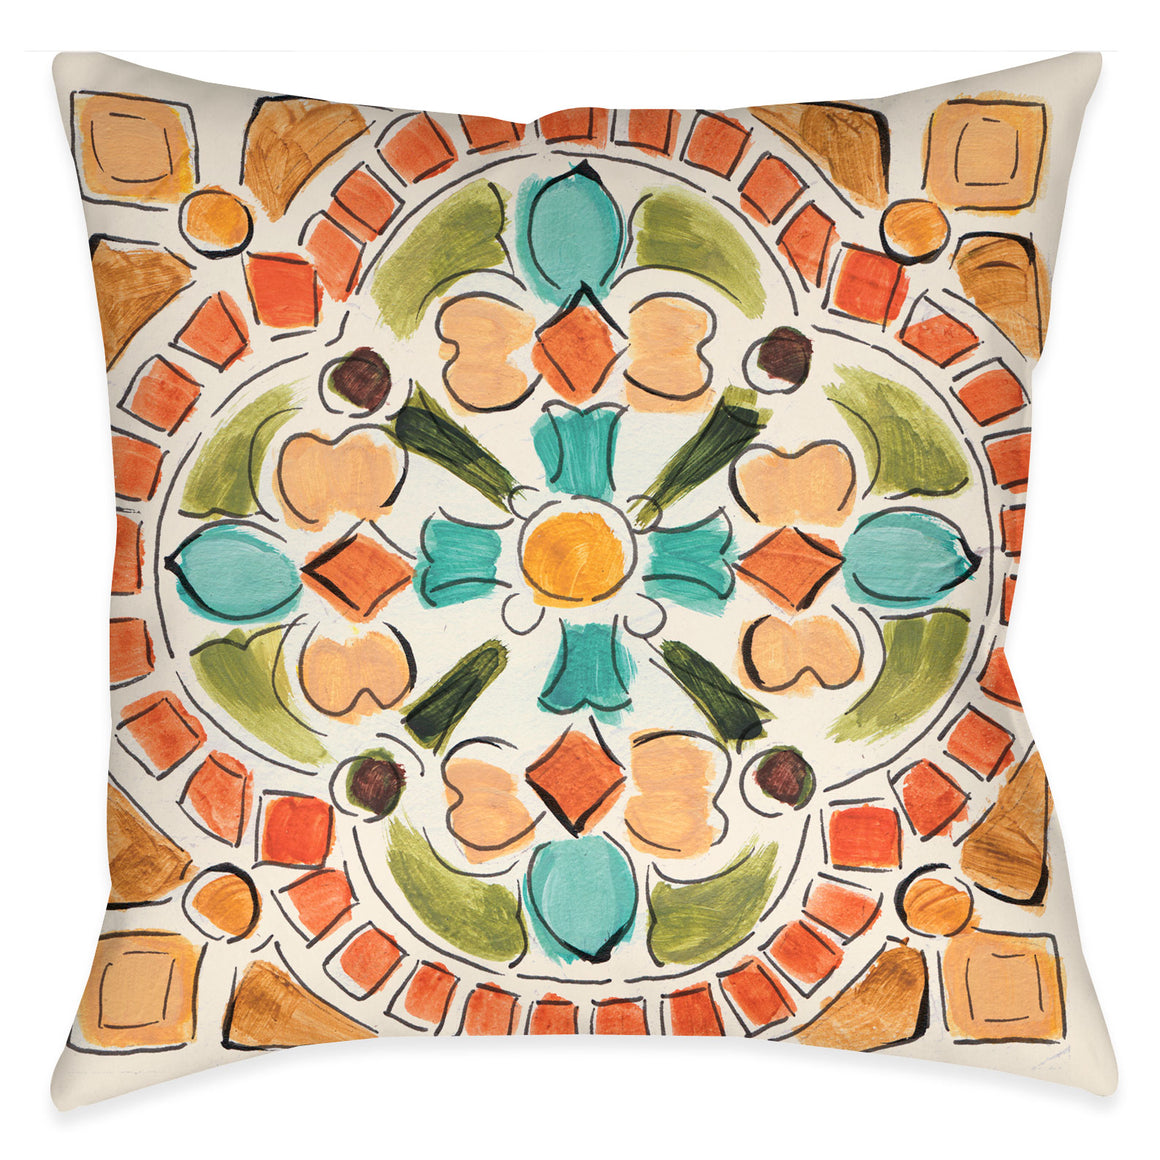 Tuscan Tile I Outdoor Decorative Pillow